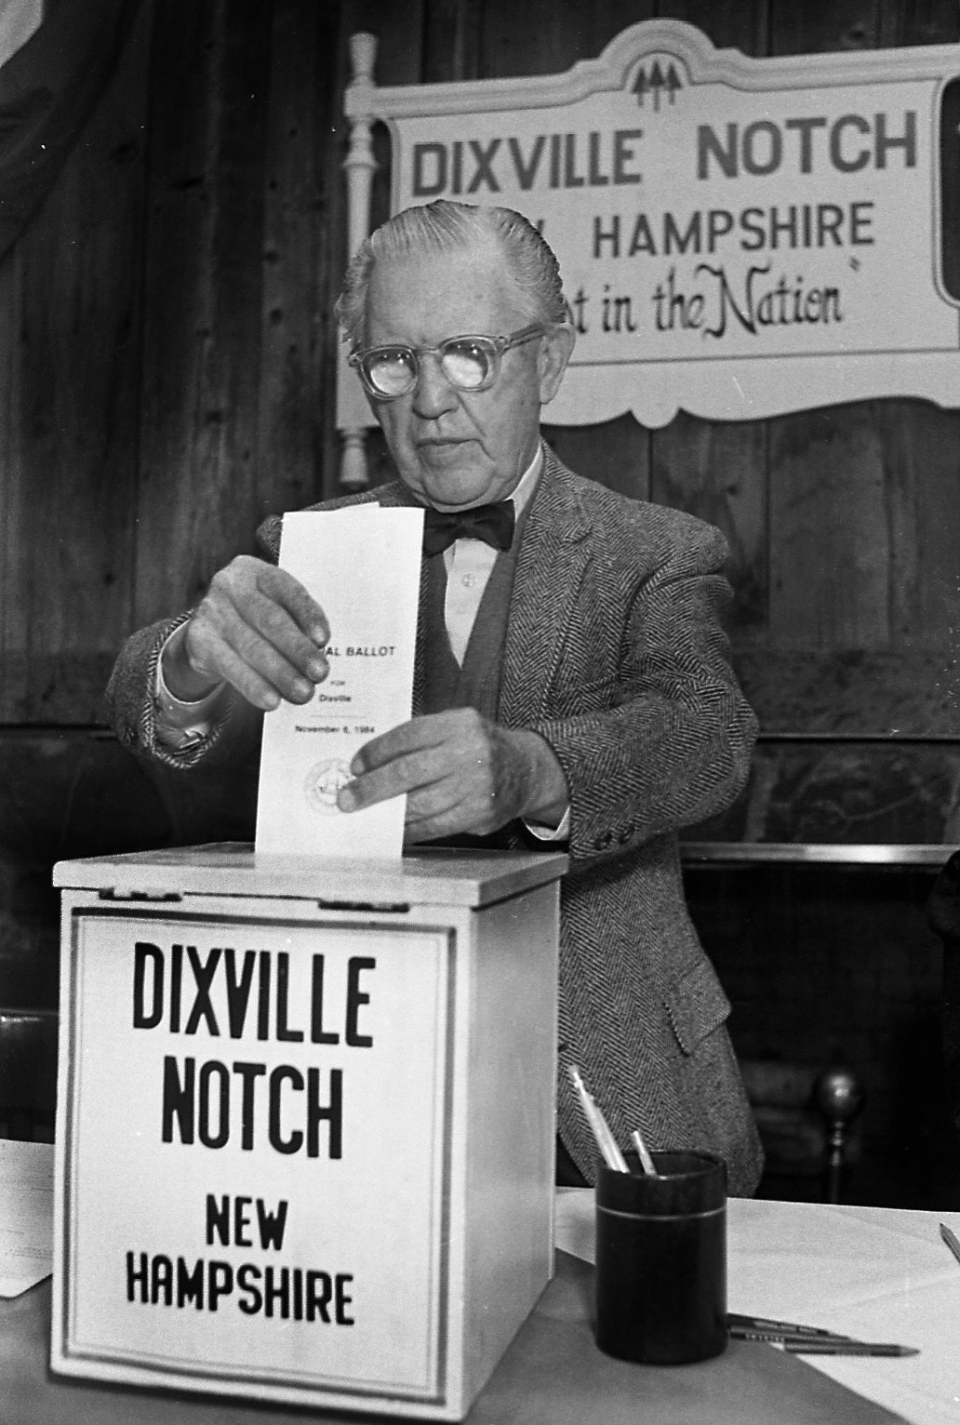 In this Feb. 28, 1984, file photo, Neil Tillotson gets ready to cast the first ballot in the New Hampshire presidential primary in Dixville, N.H. (Jim Cole / AP Photo)